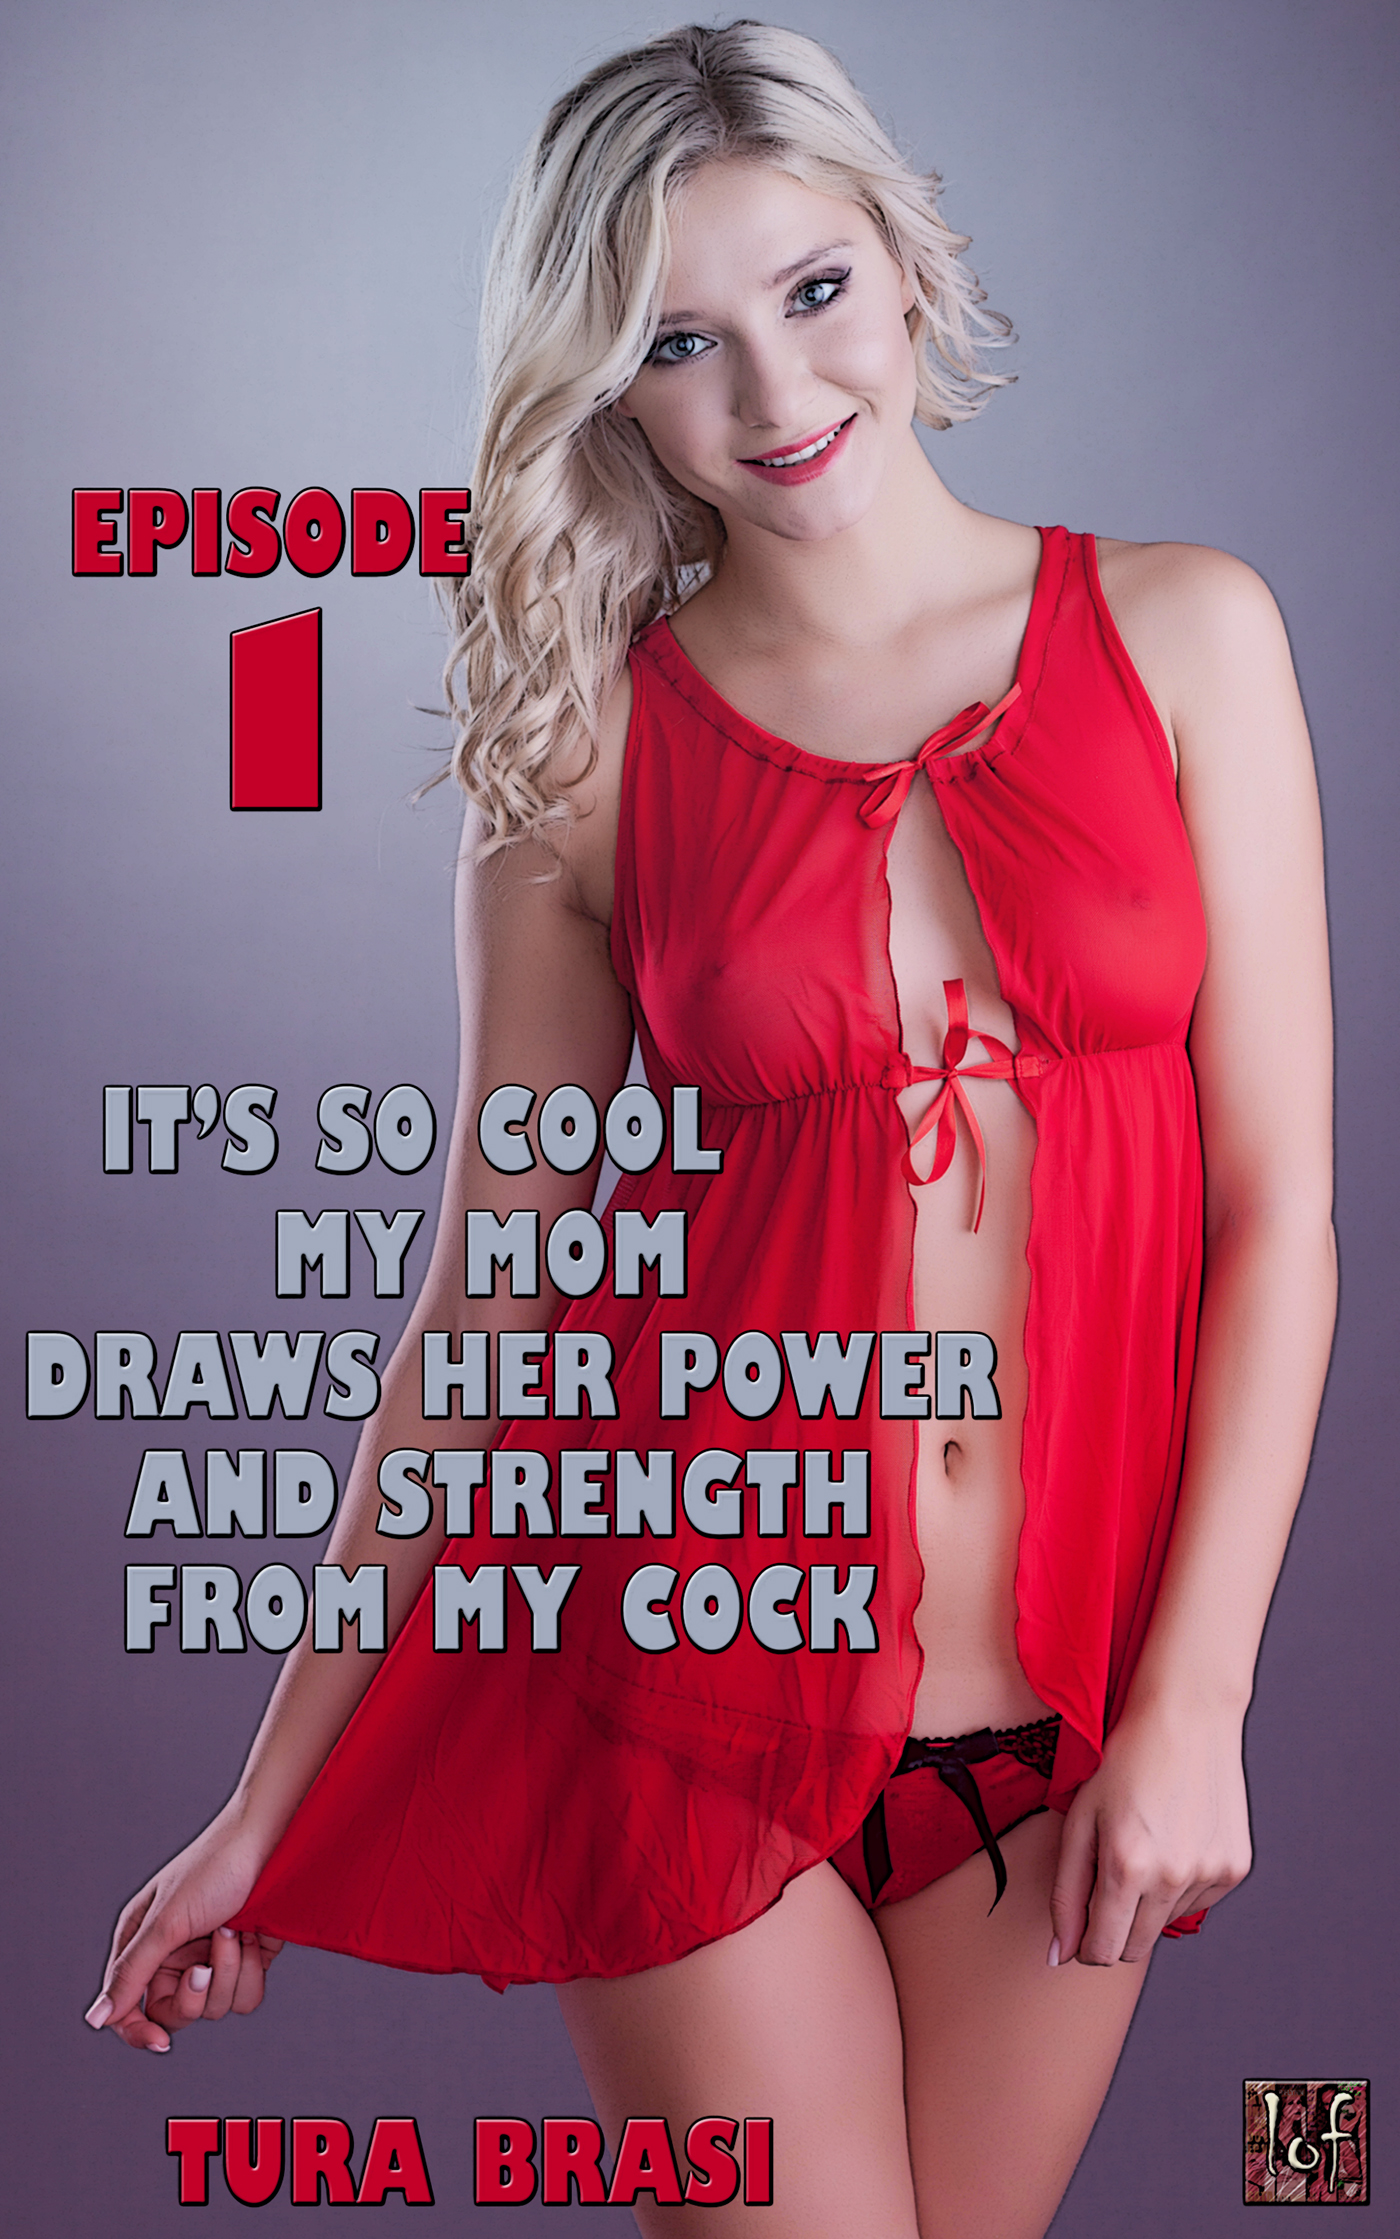 LOF New Release: It's So Cool My Mom Draws Her Power And Strength From My Cock: Episode 1